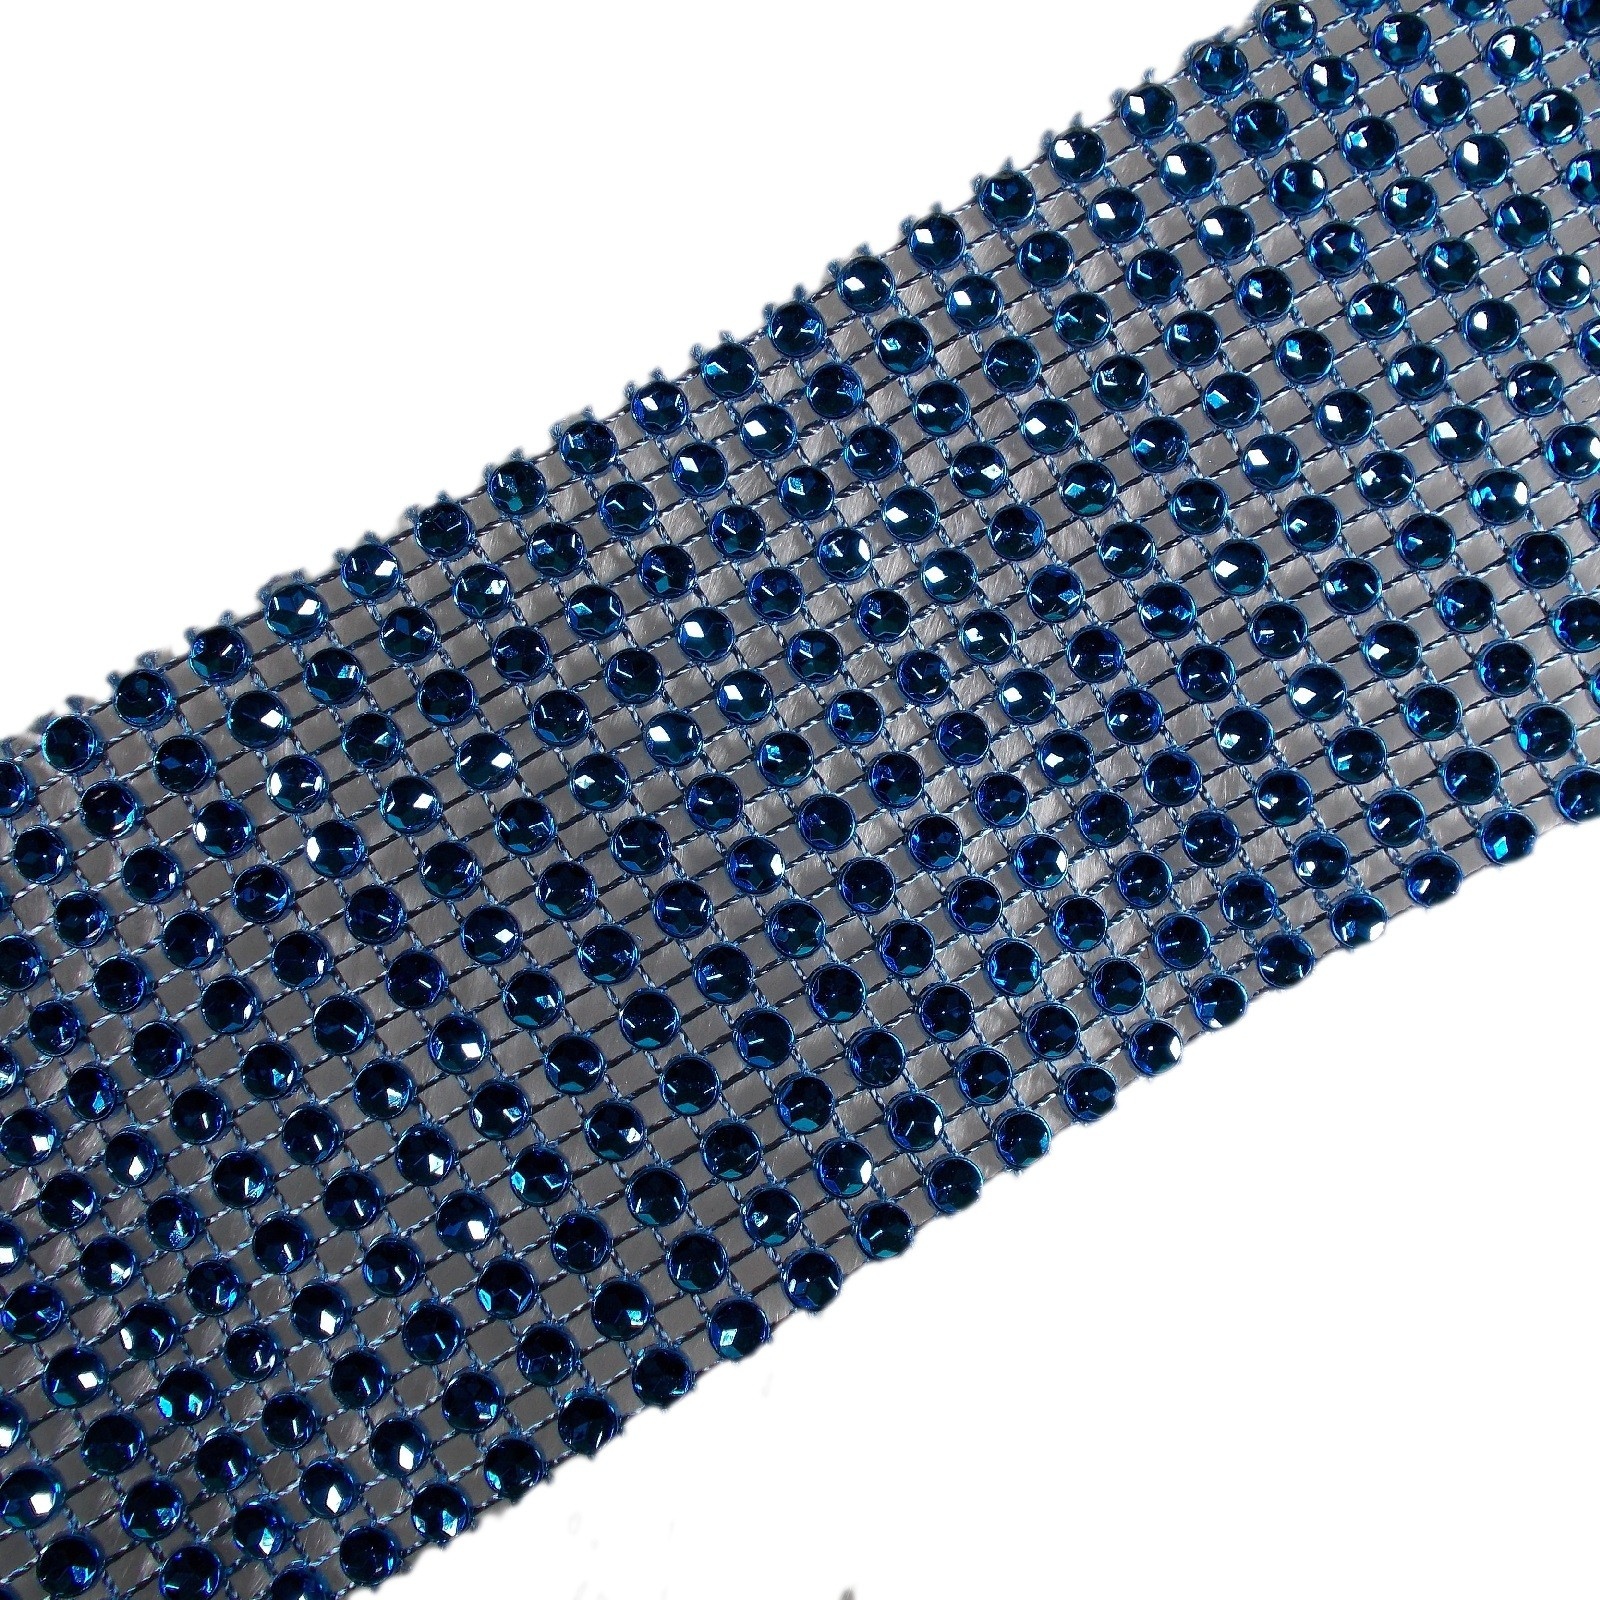 12 Row Diamante Trim 6cm Wide Blue 1 metre length